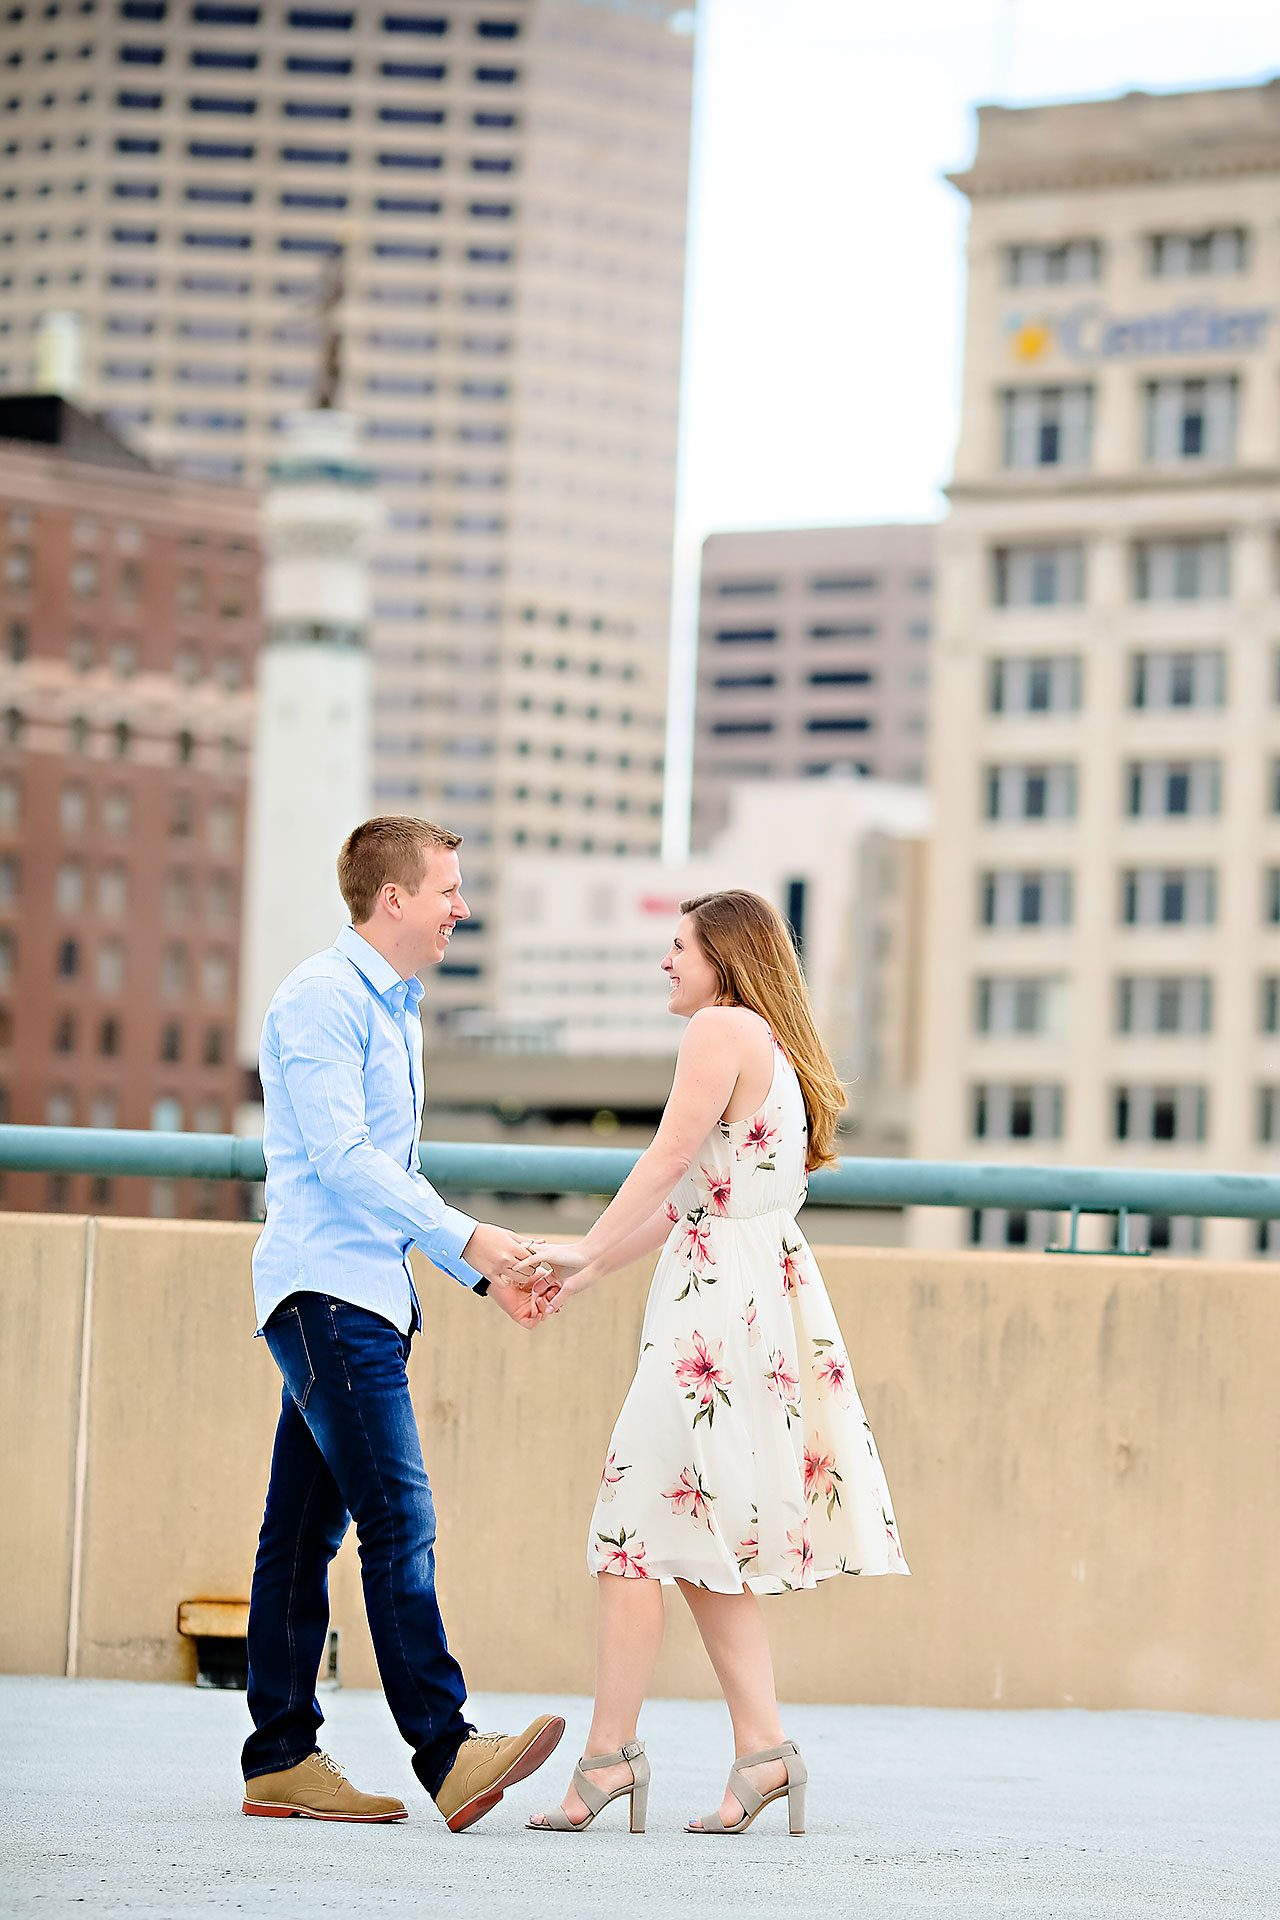 Chelsea Jeff Downtown Indy Engagement Session 140